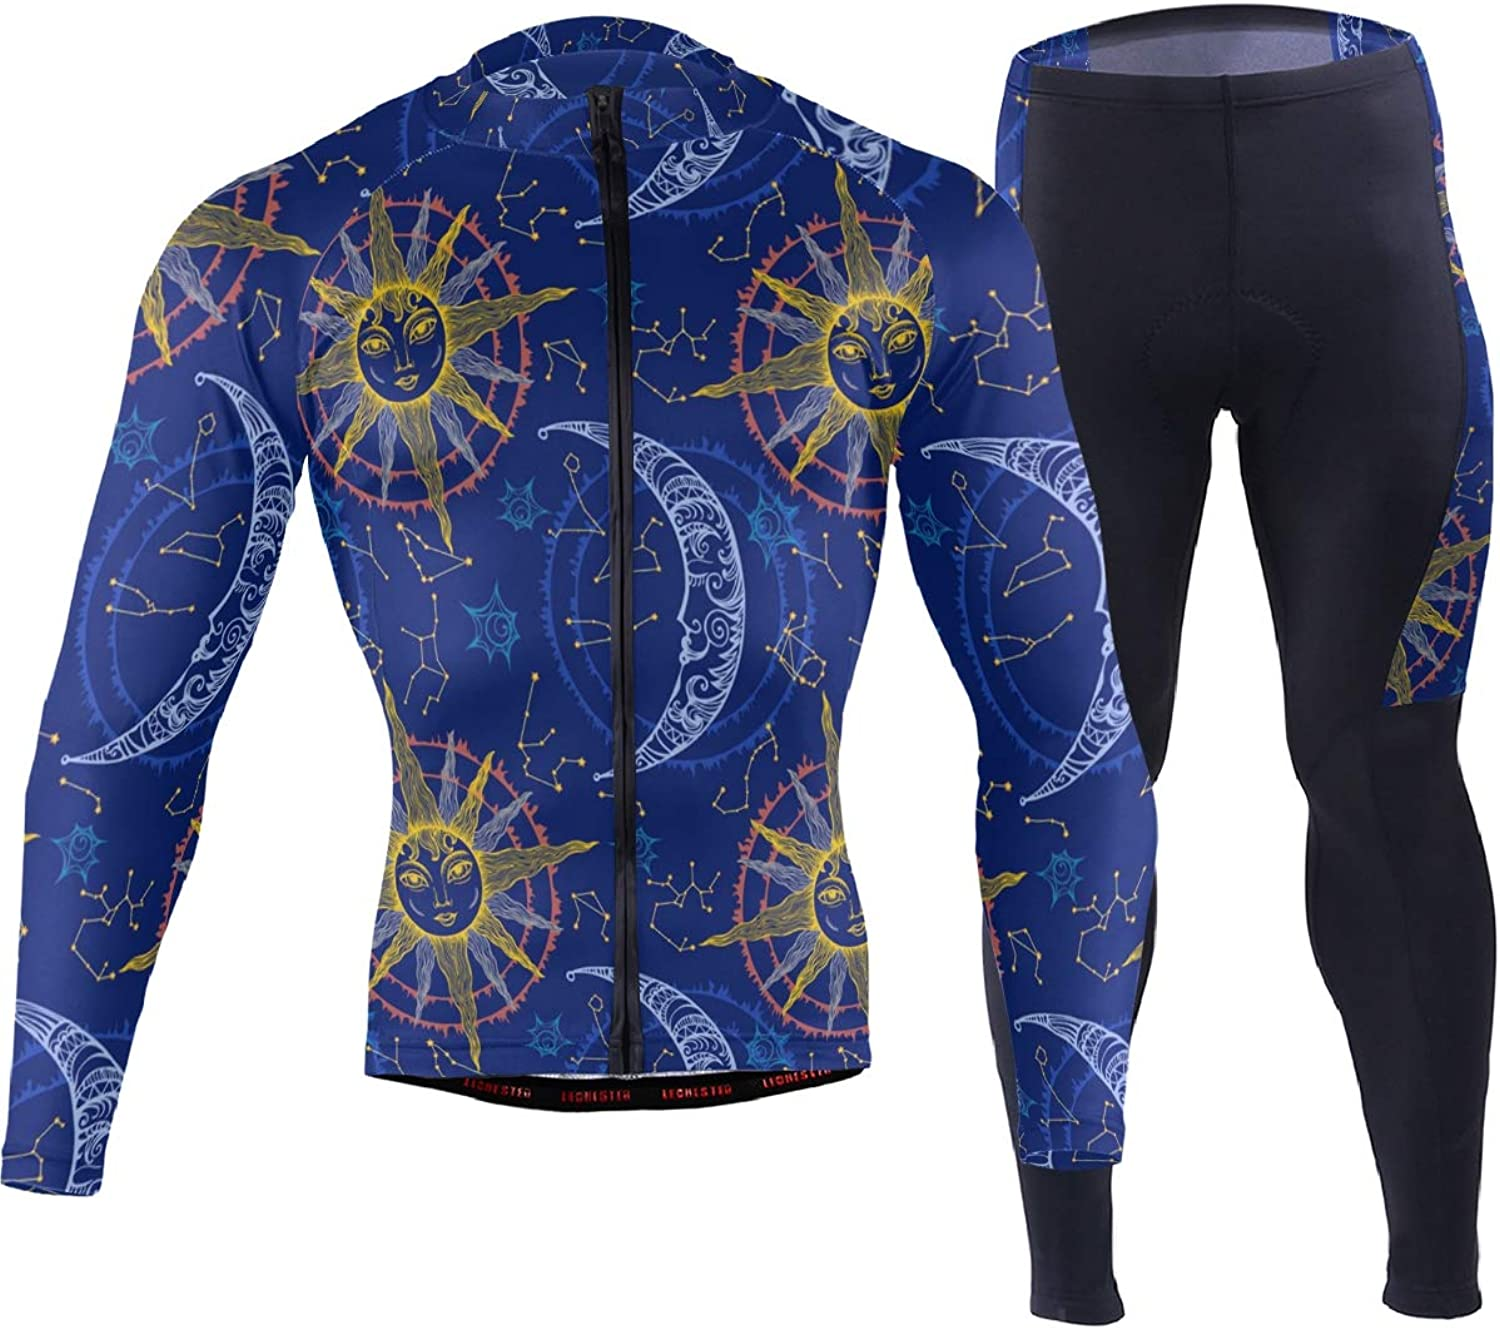 FAJRO Art Sun Moon Faces Sportswear Suit Bike Outfit Set Breathable Quick Dry 3D Padded Pants